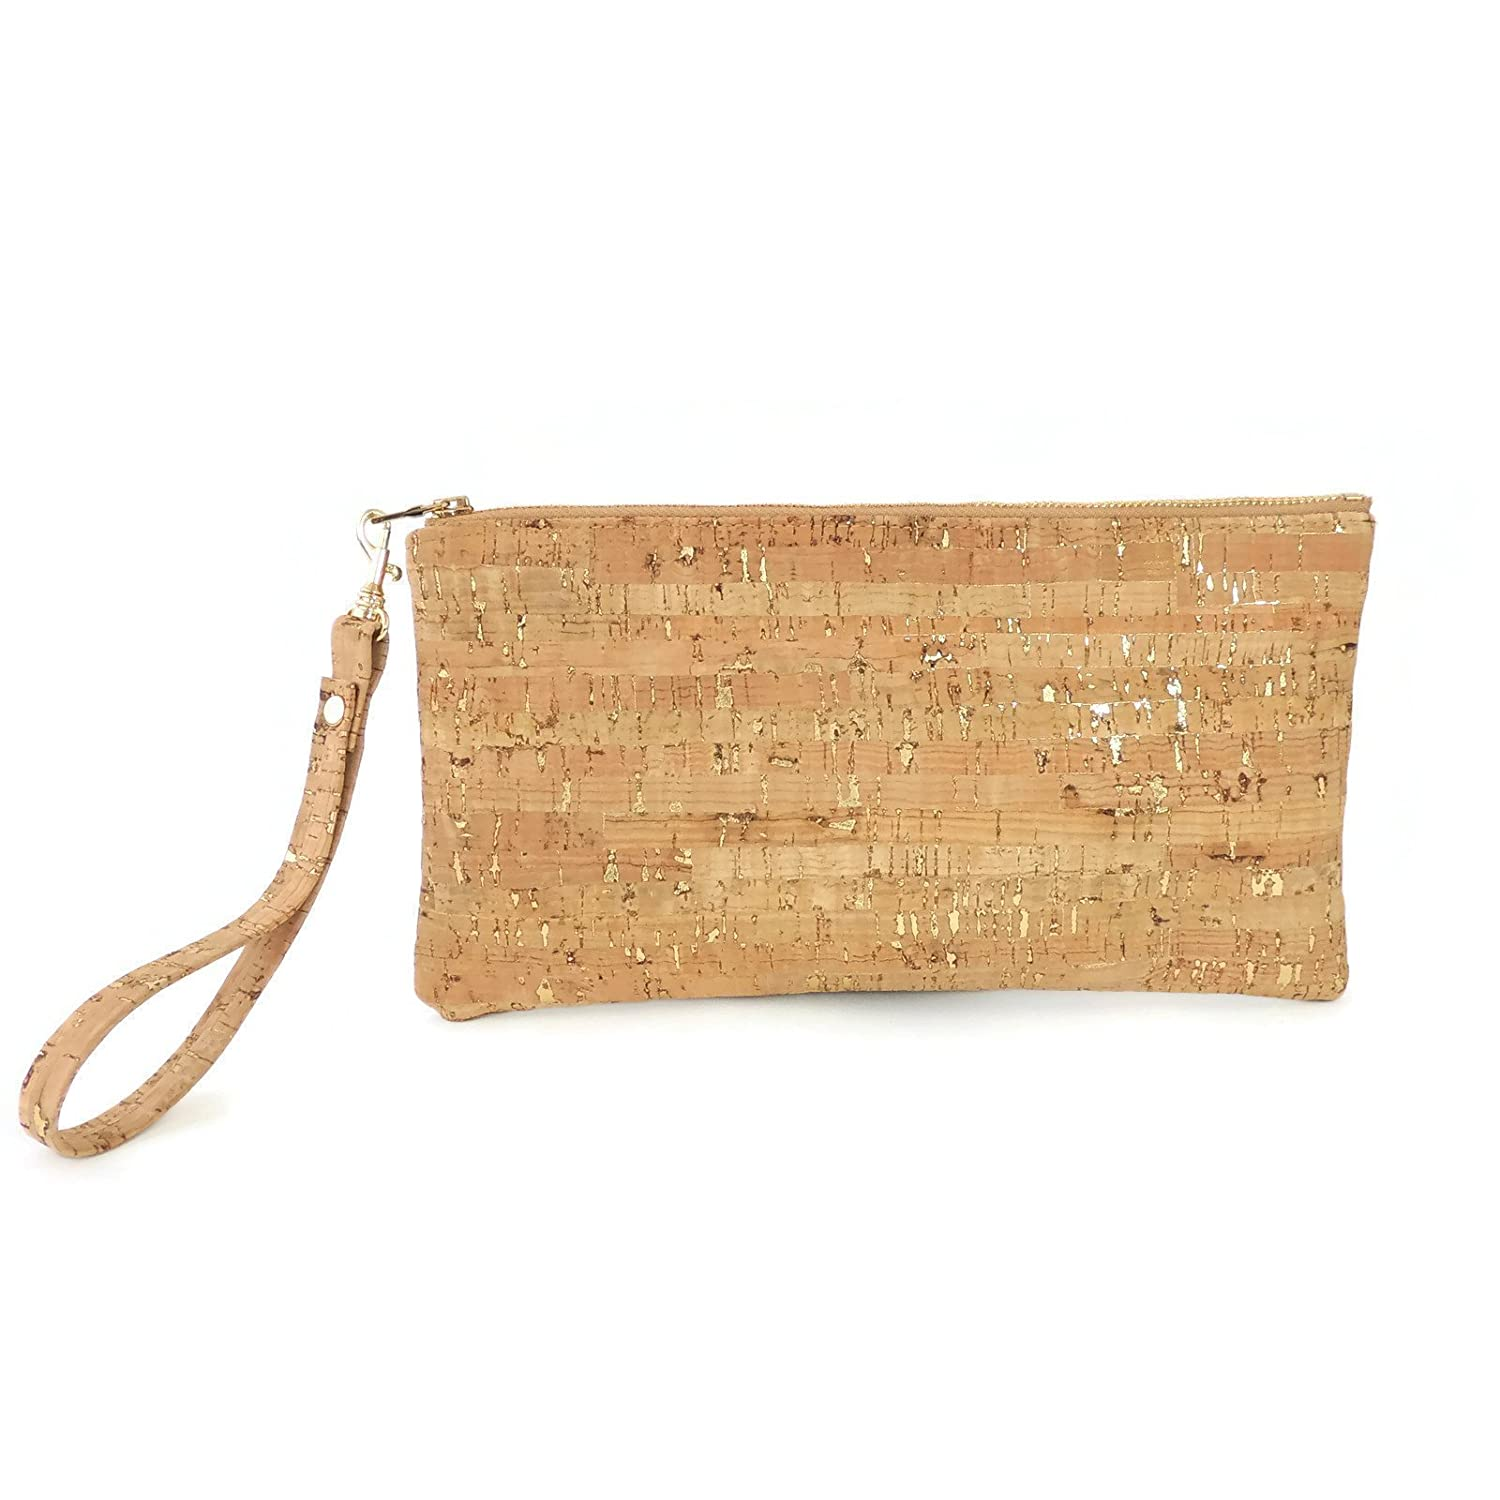 Wristlet Clutch in Cork with Gold Flecks by Spicer Bags